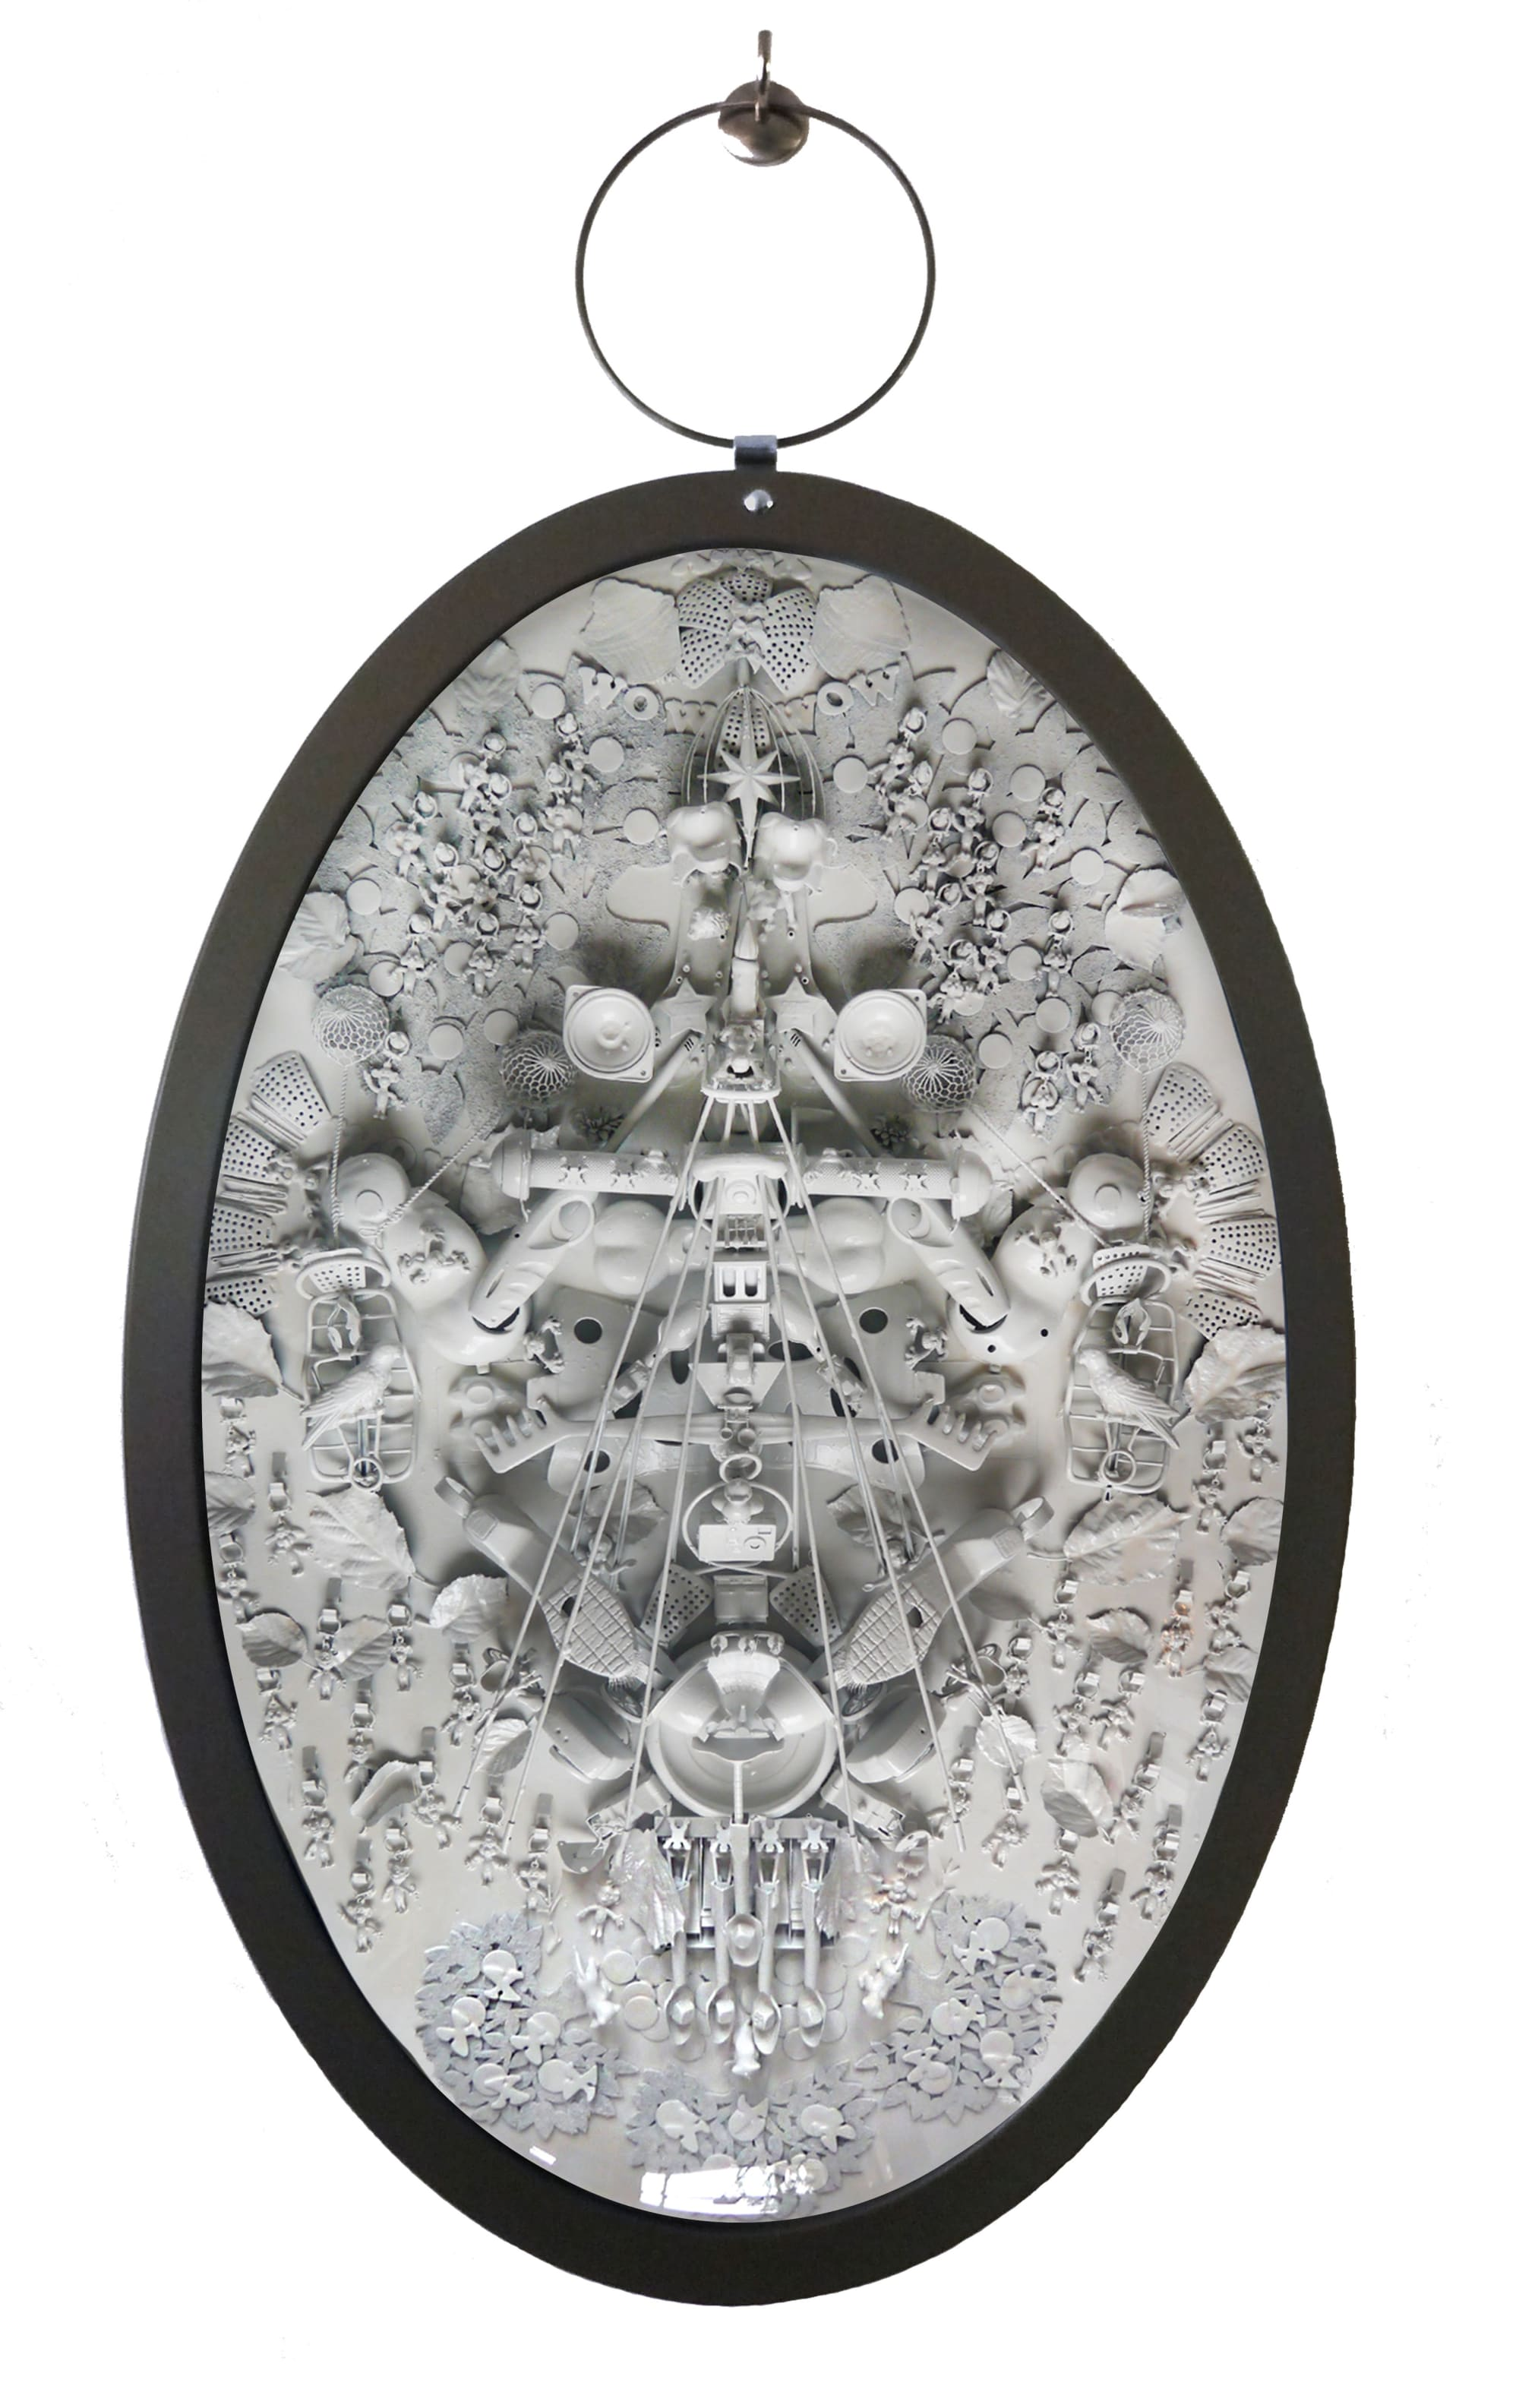 XXL Sculptural Wall Medallion Hanging